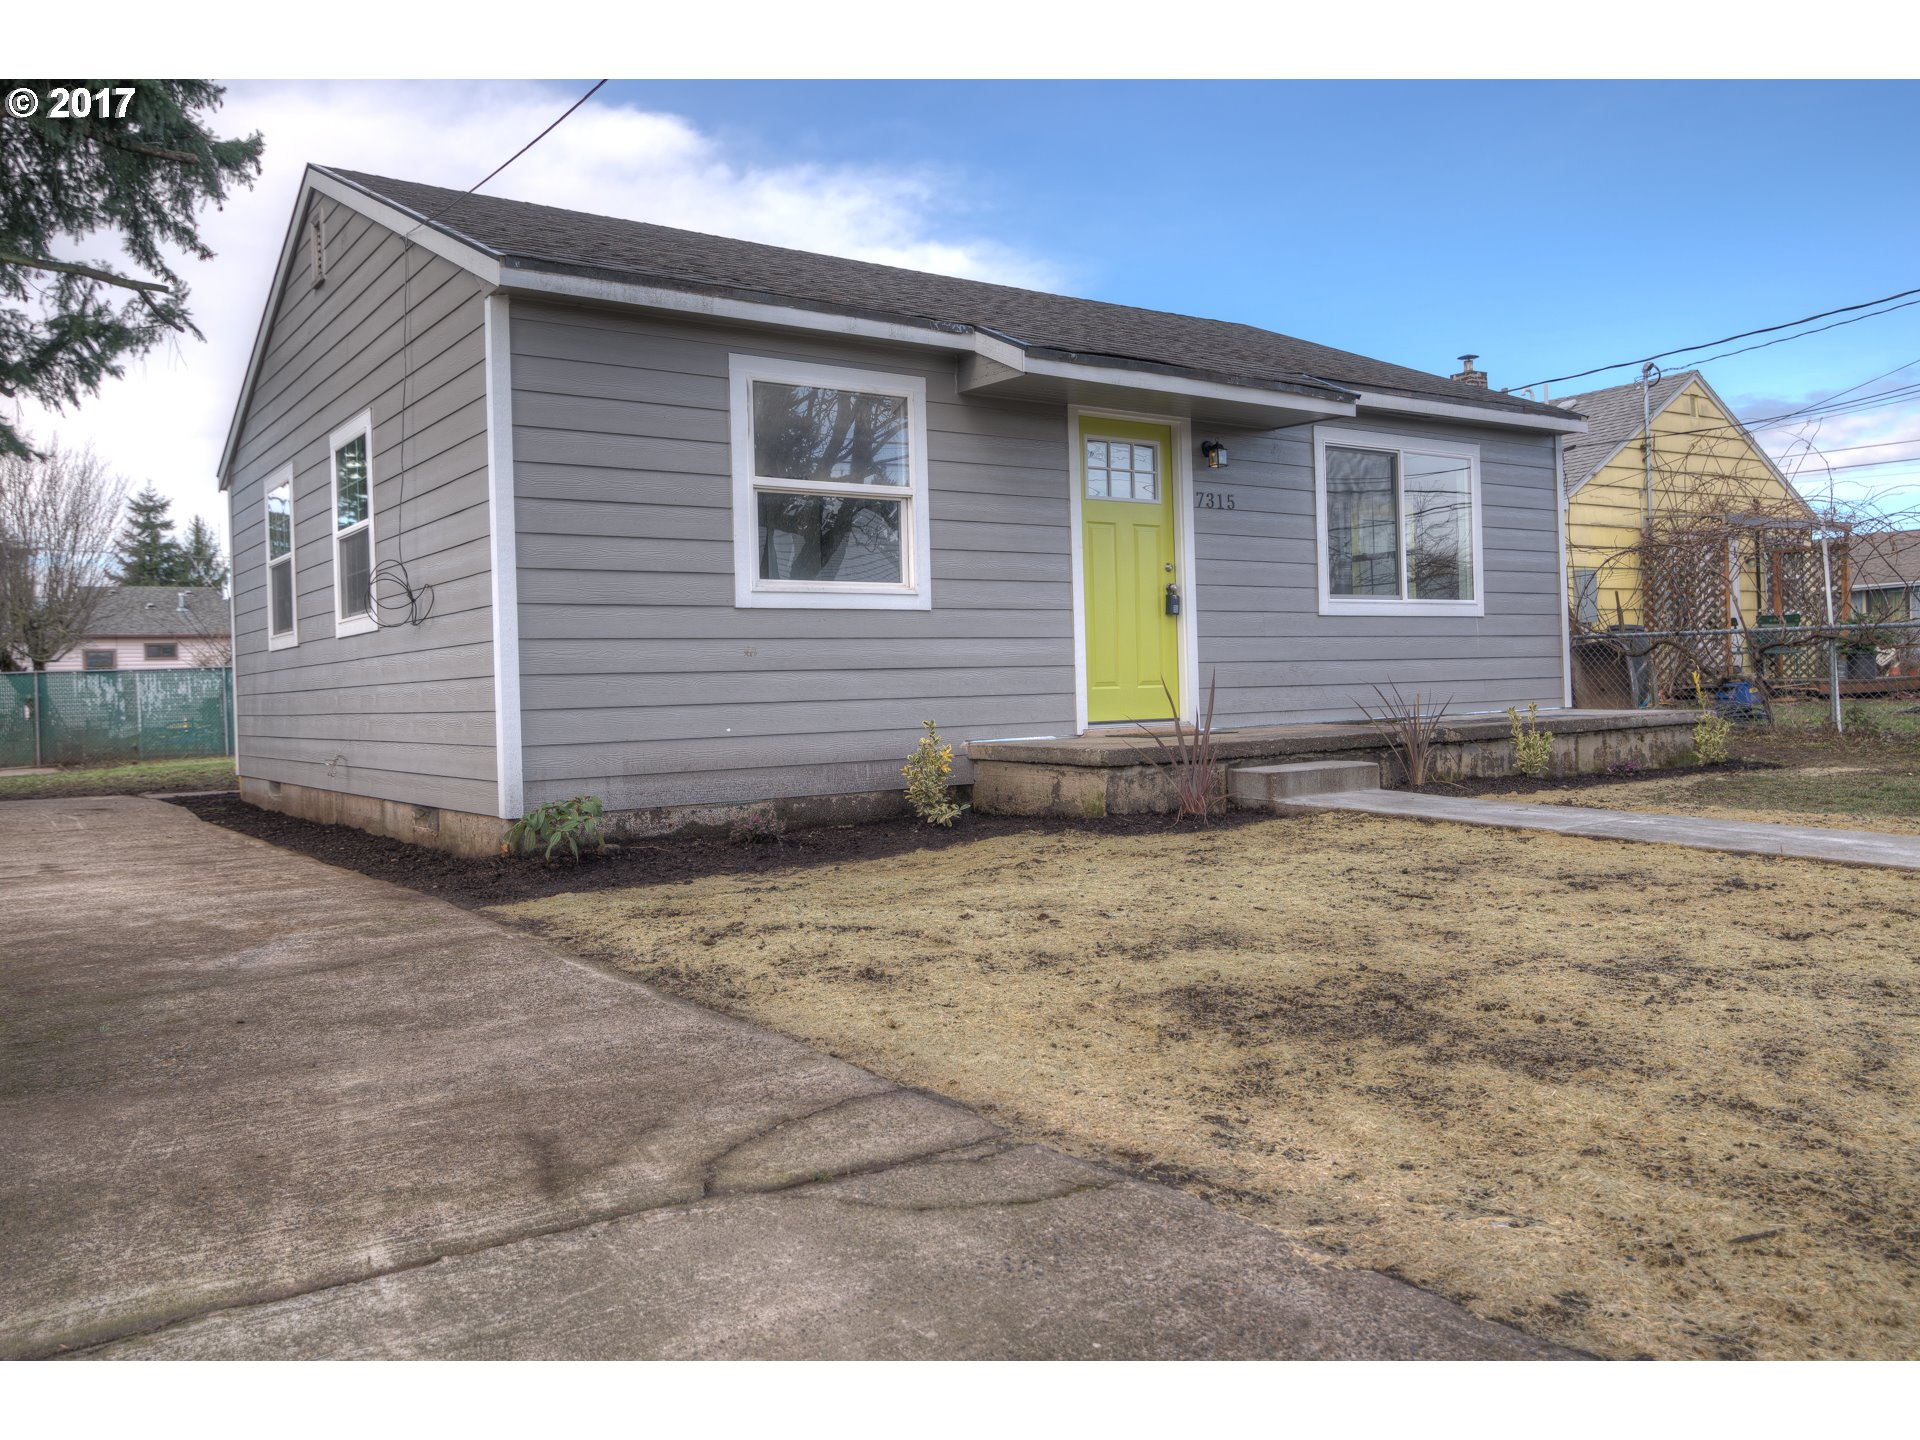 720 sq. ft 2 bedrooms 1 bathrooms  House For Sale,Portland, OR